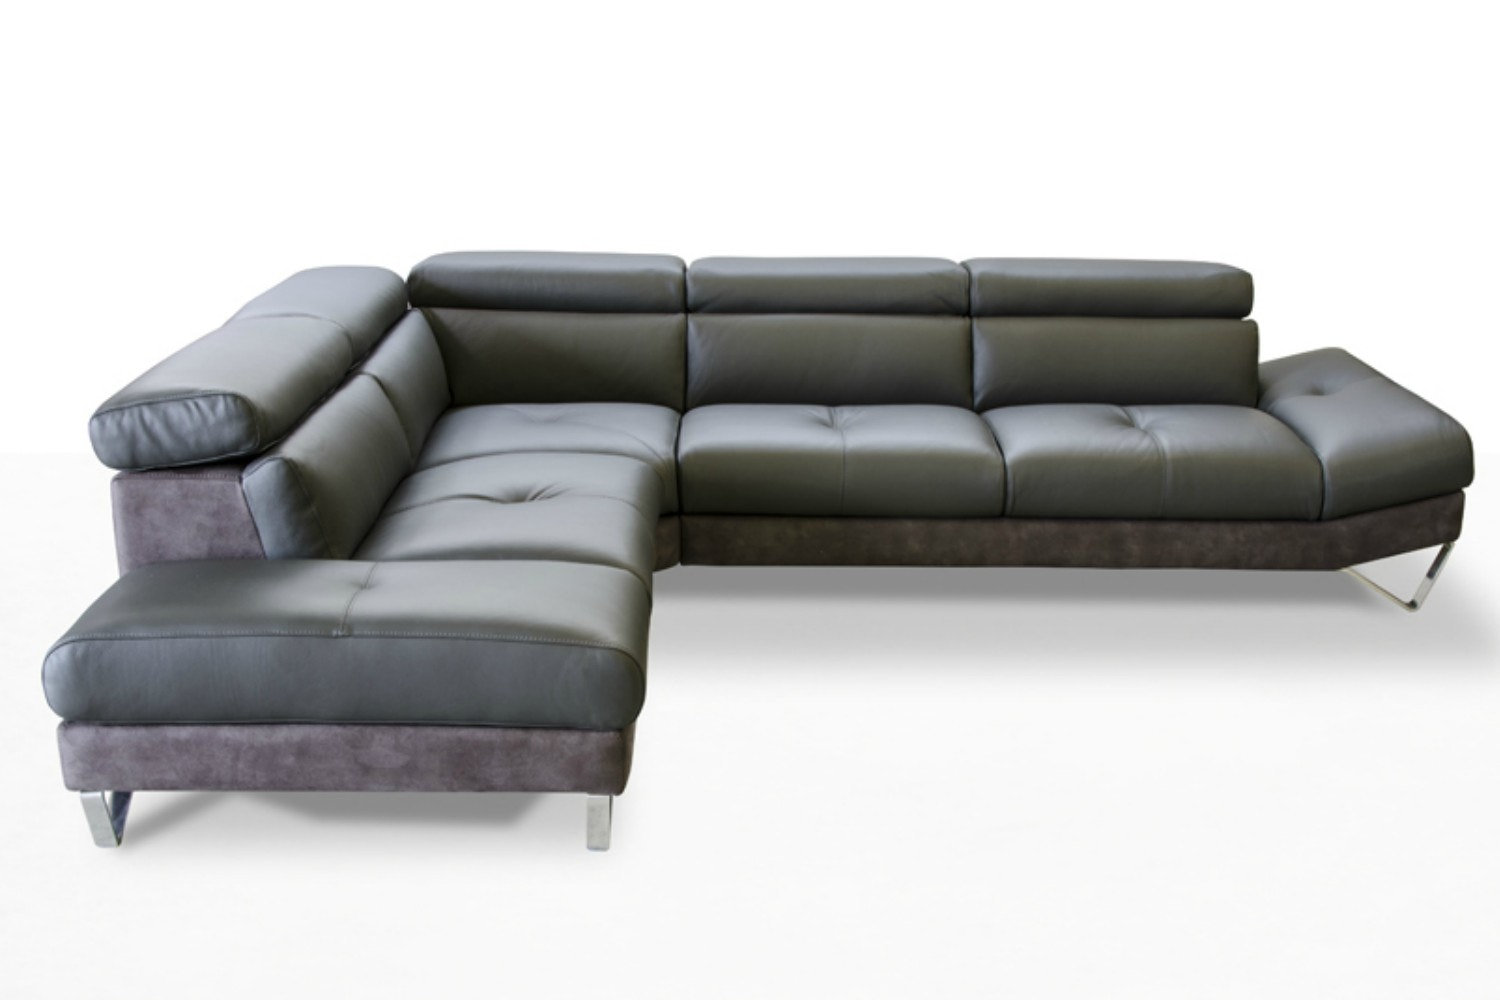 Leather Sofas Harvey Norman Ireland